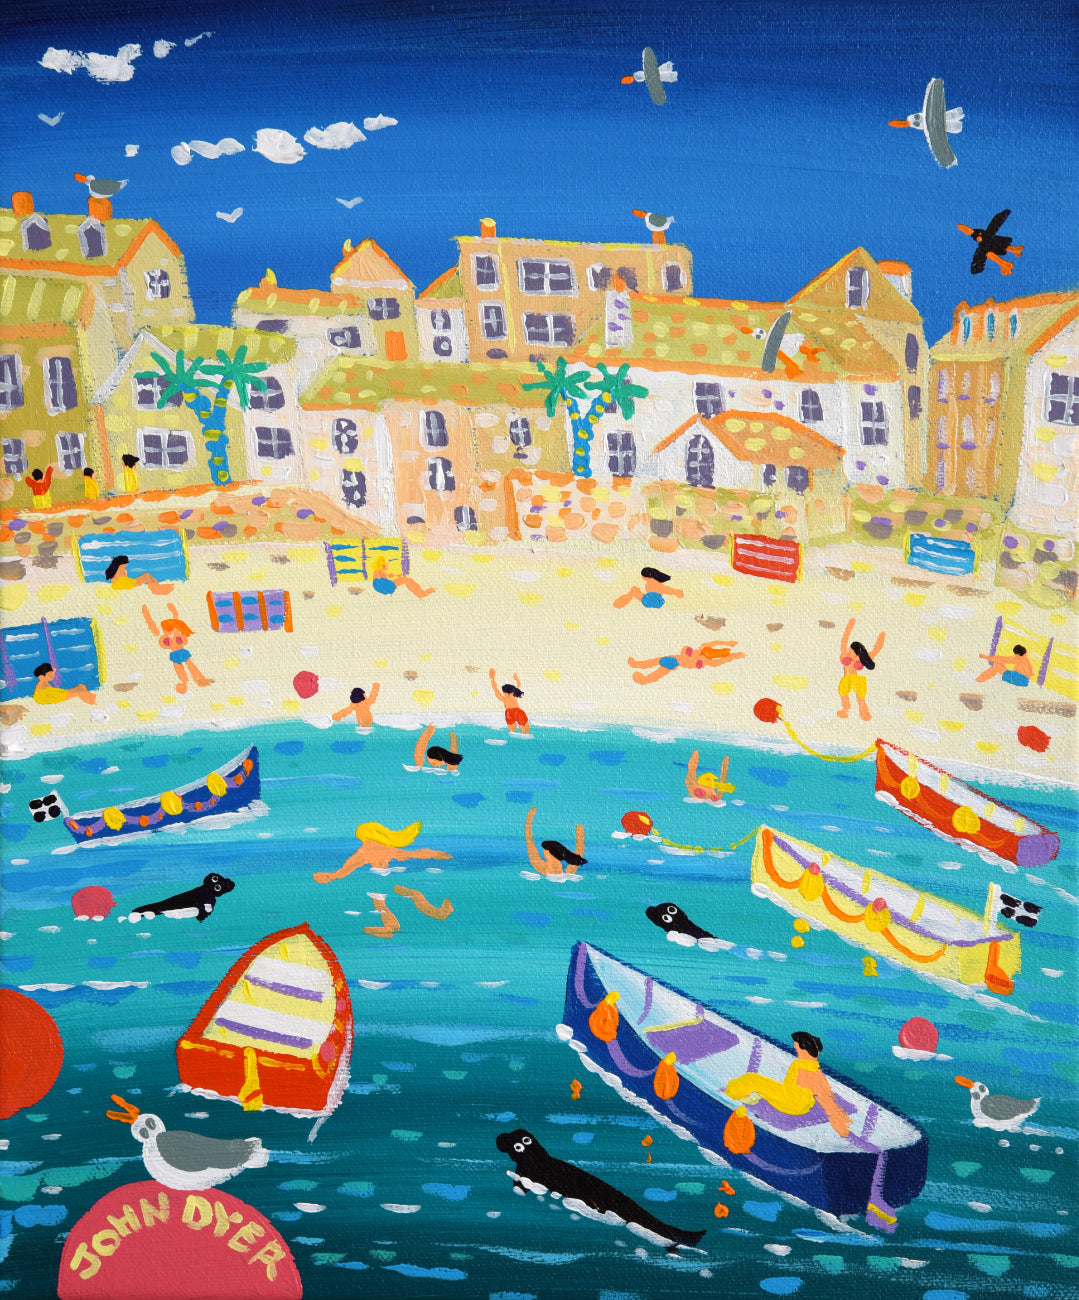 John Dyer Painting. Swimming with Seals, St Ives